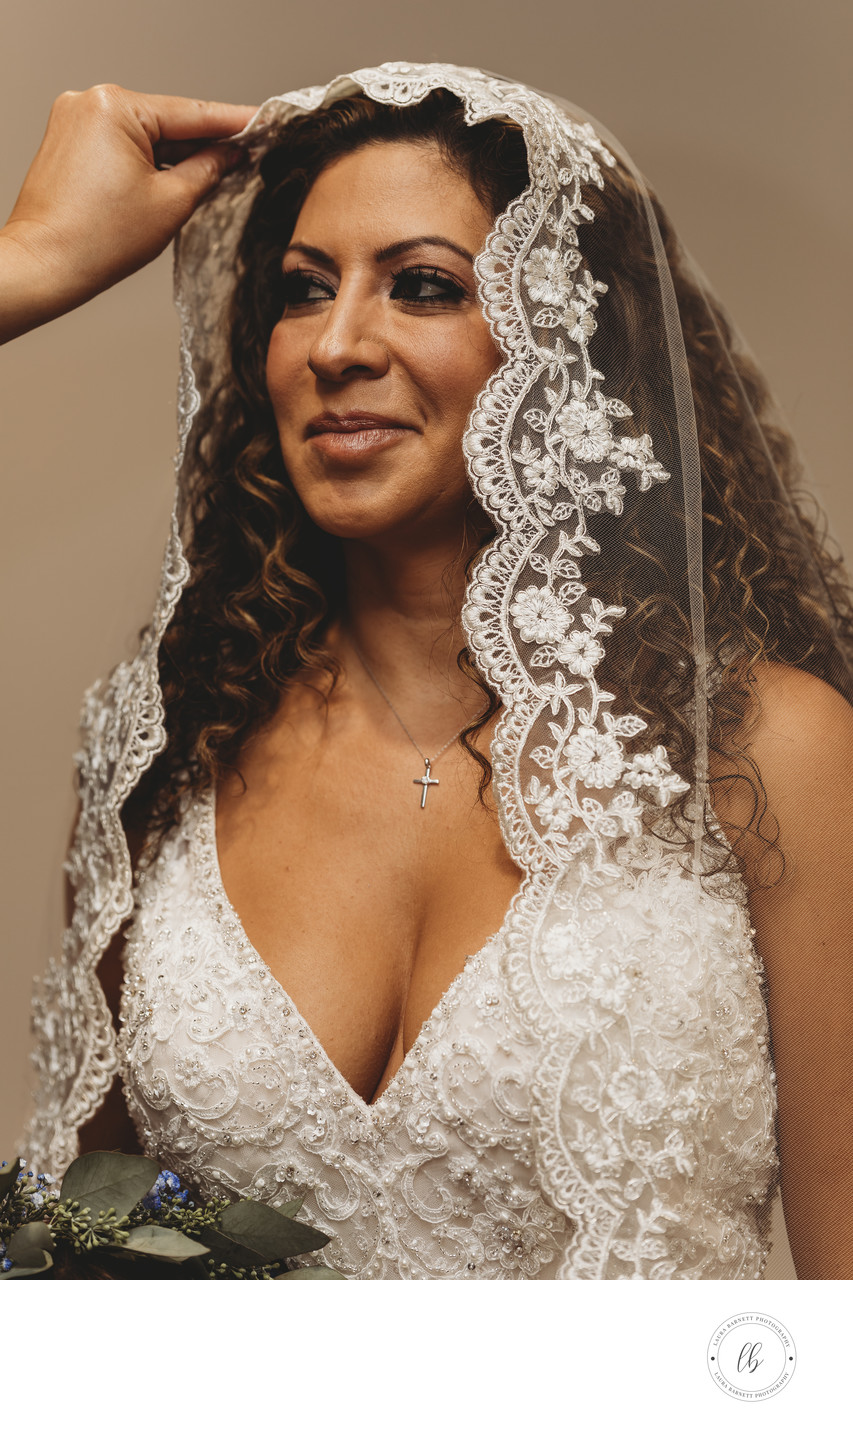 Bride with a veil over her hair